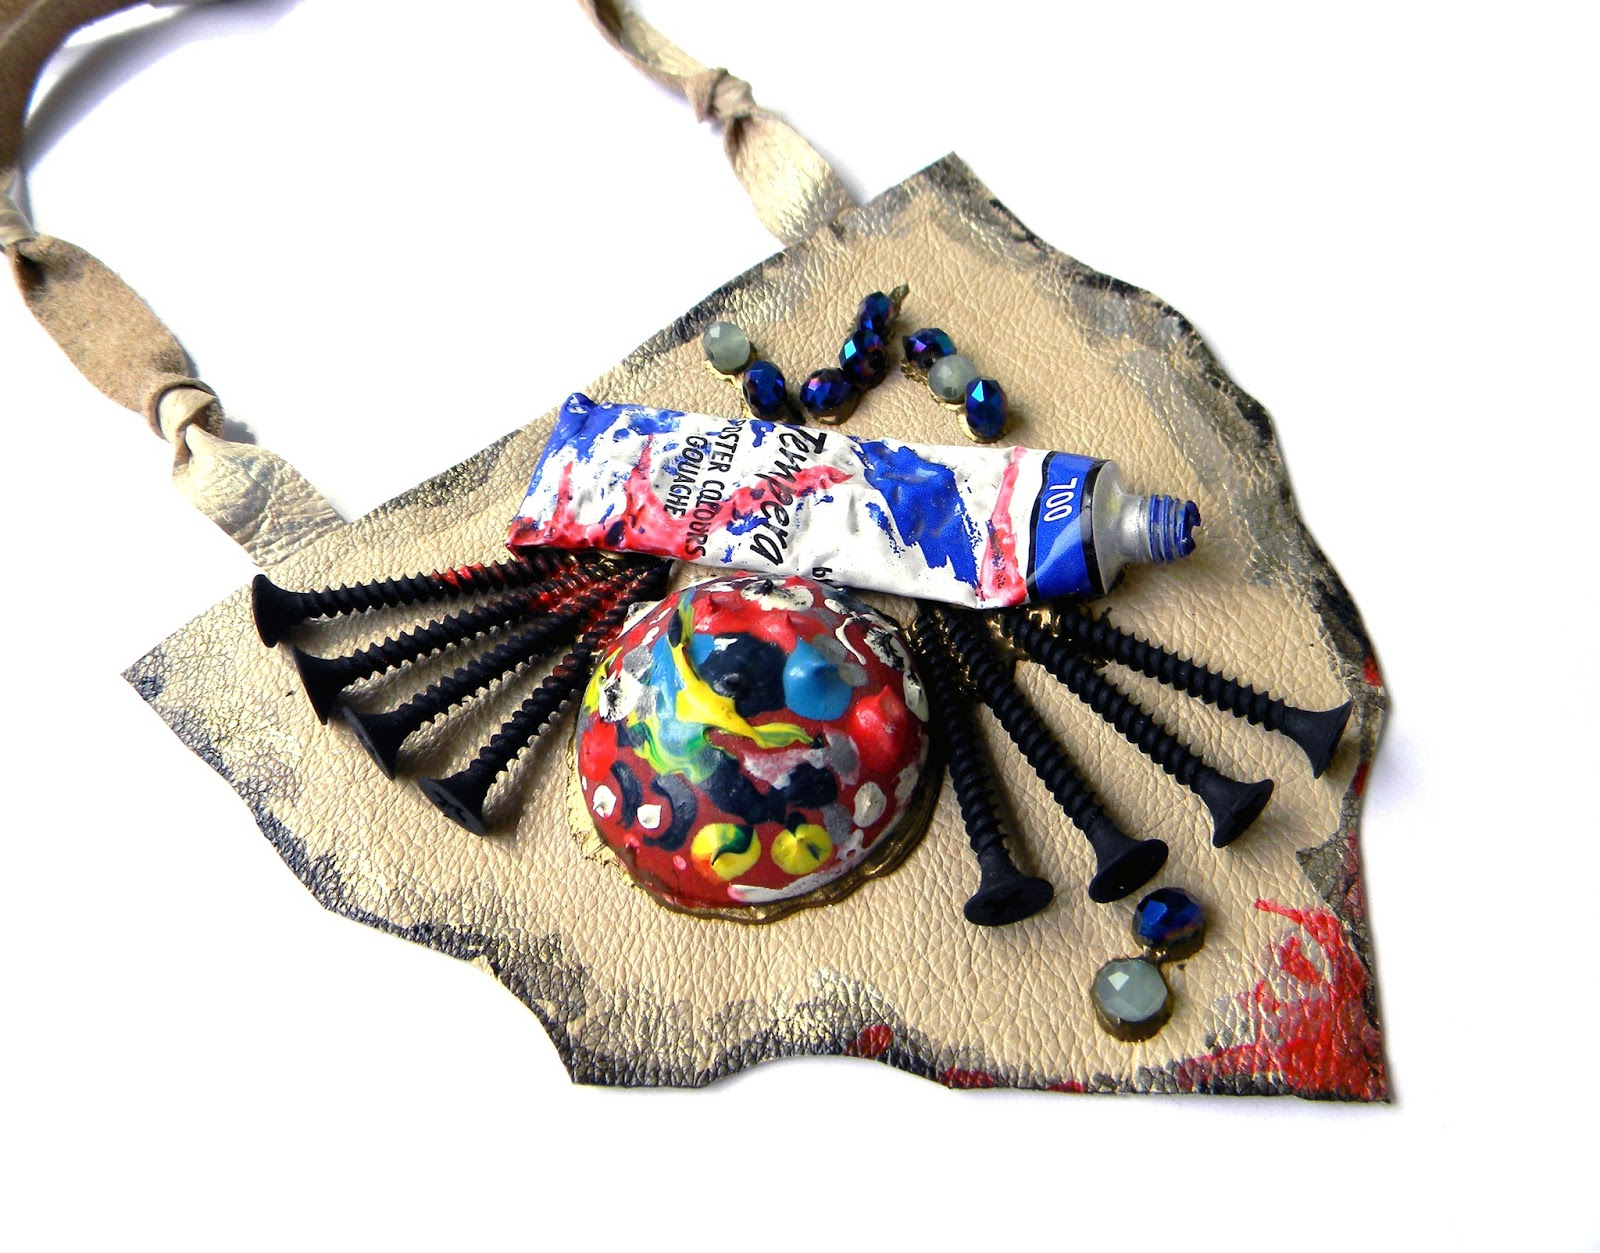 Steampunk Abstract Necklace Bib Colorful Leather Art Jewelry